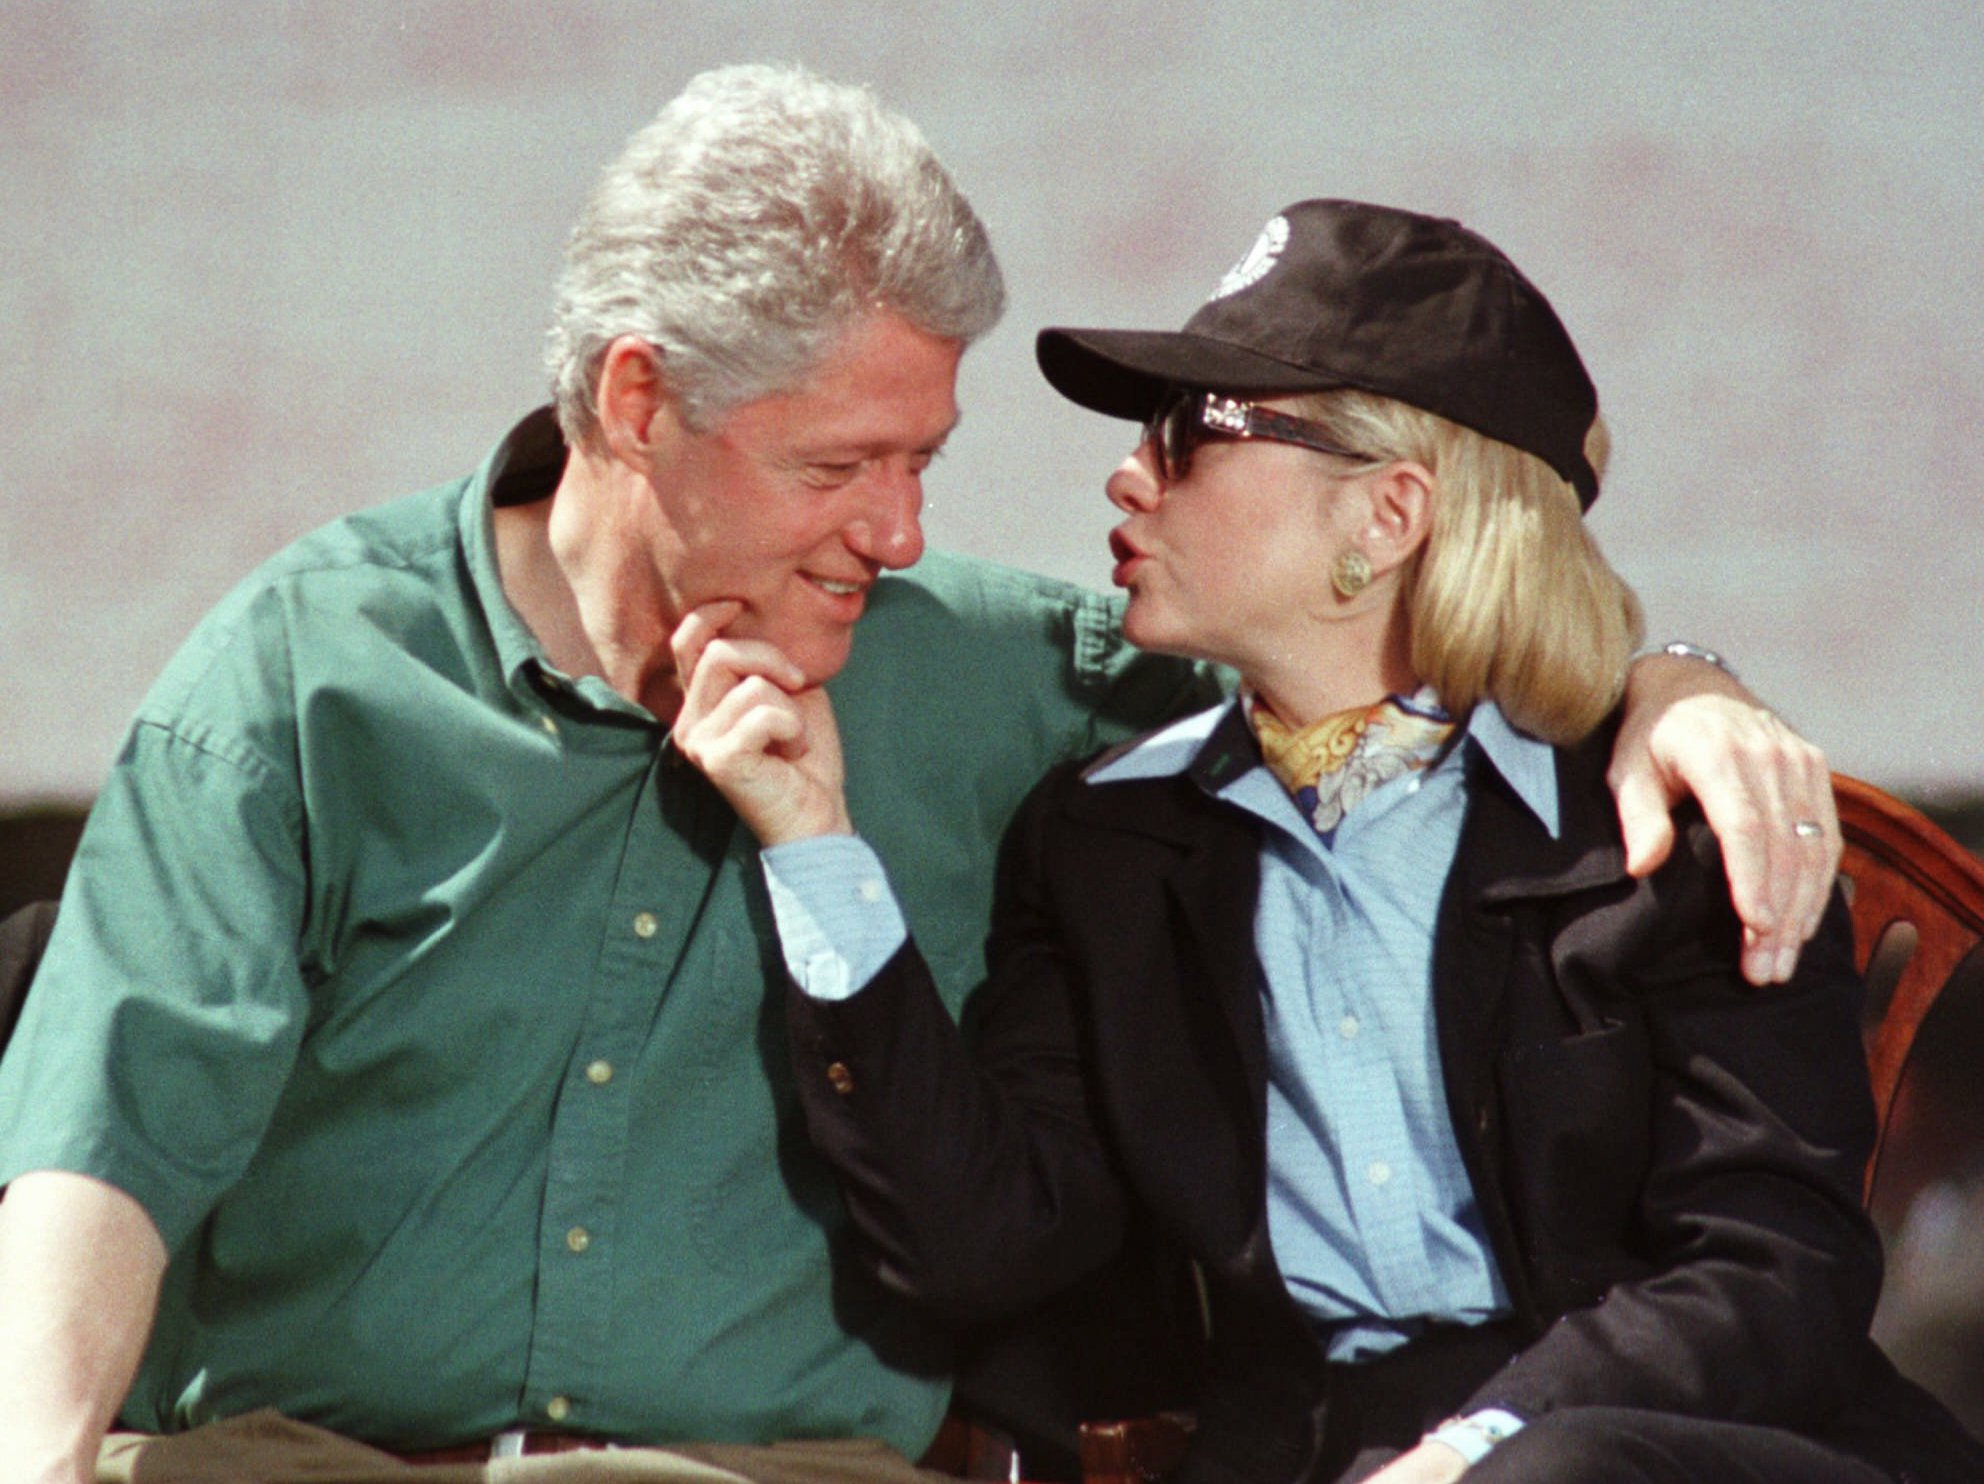 First lady Hillary Rodham Clinton, squeezes the chin of President Bill Clinton during the kick-off rally for The President's Summit in Philadelphia on April 27, 1997.